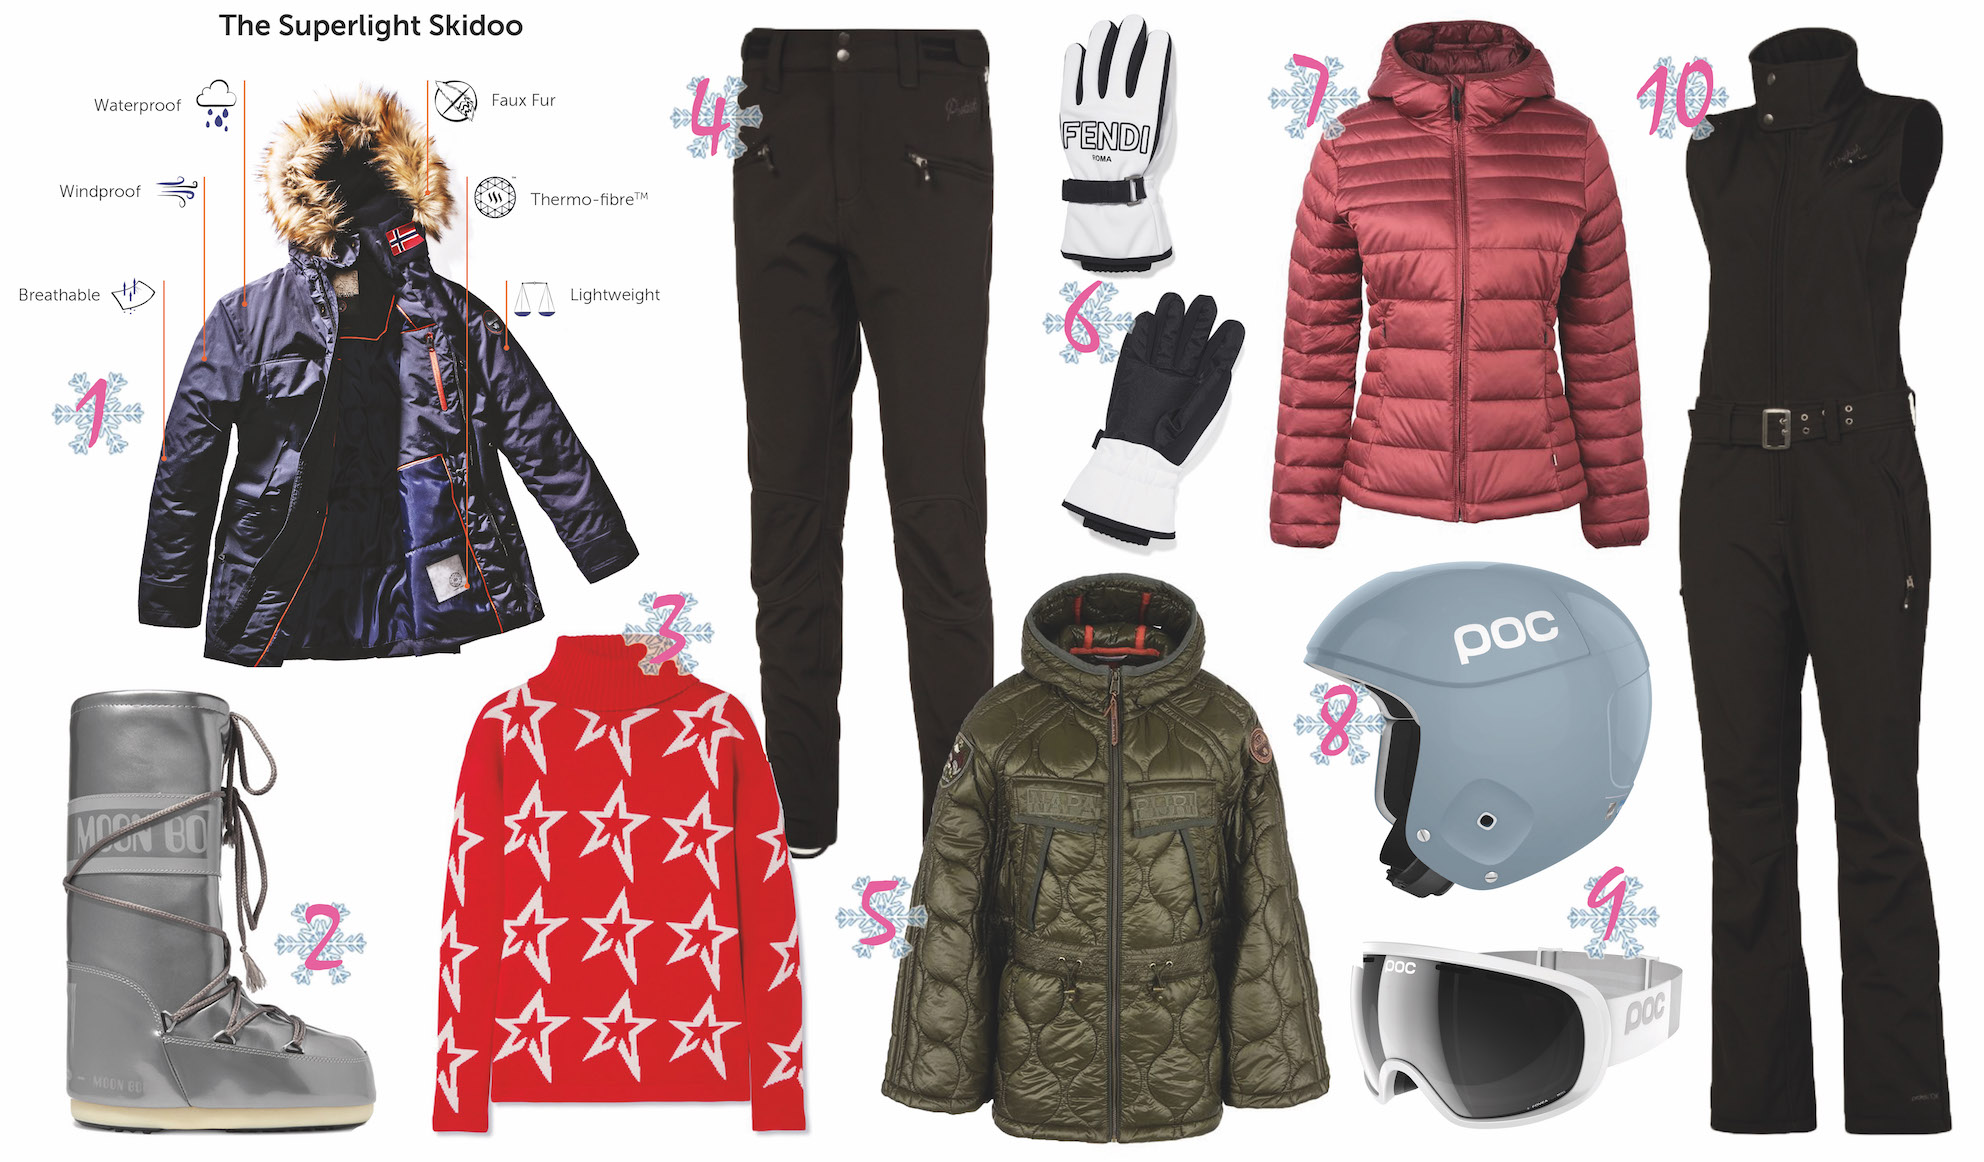 WINTER SPORT MUST HAVES